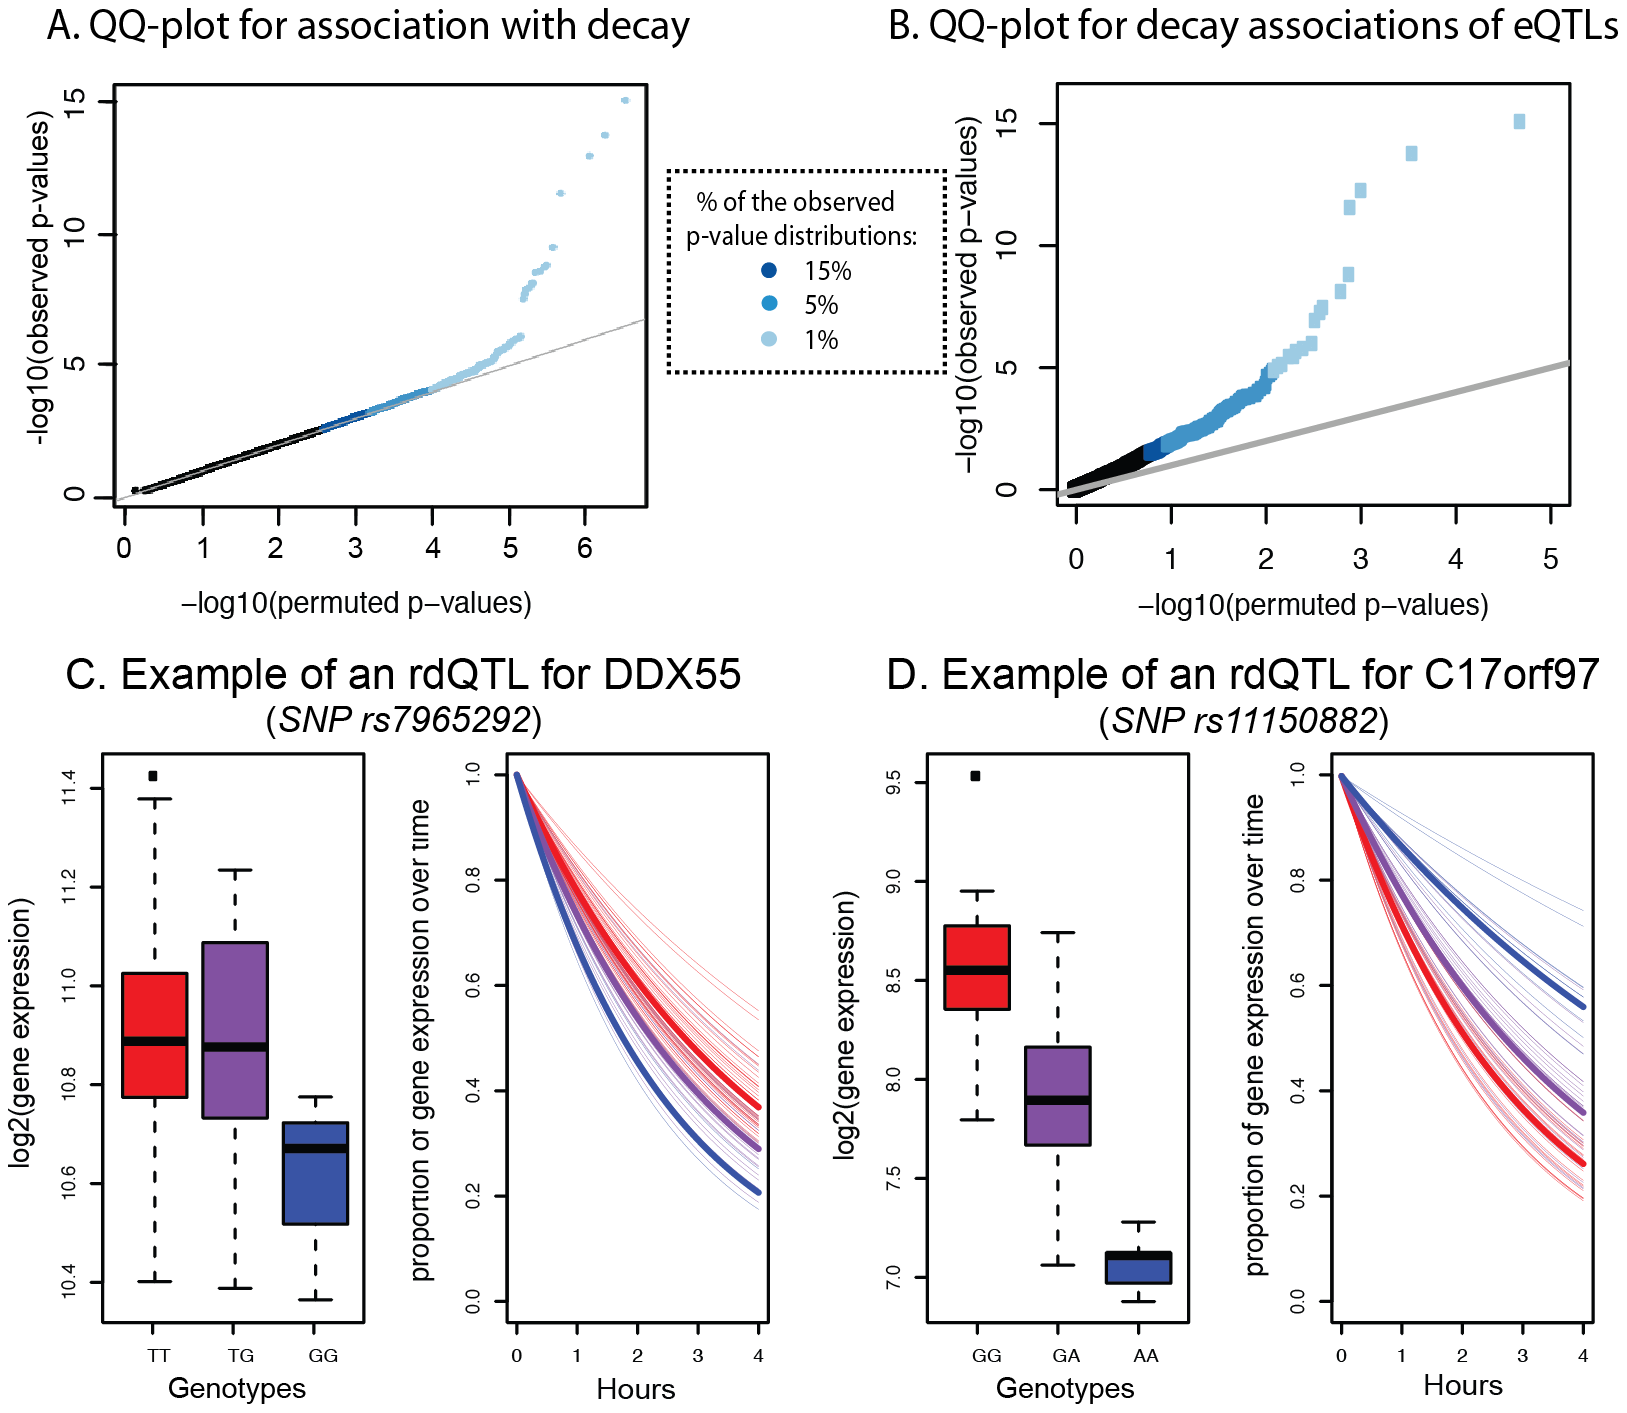 Genome-wide identification of rdQTLs and representative examples.